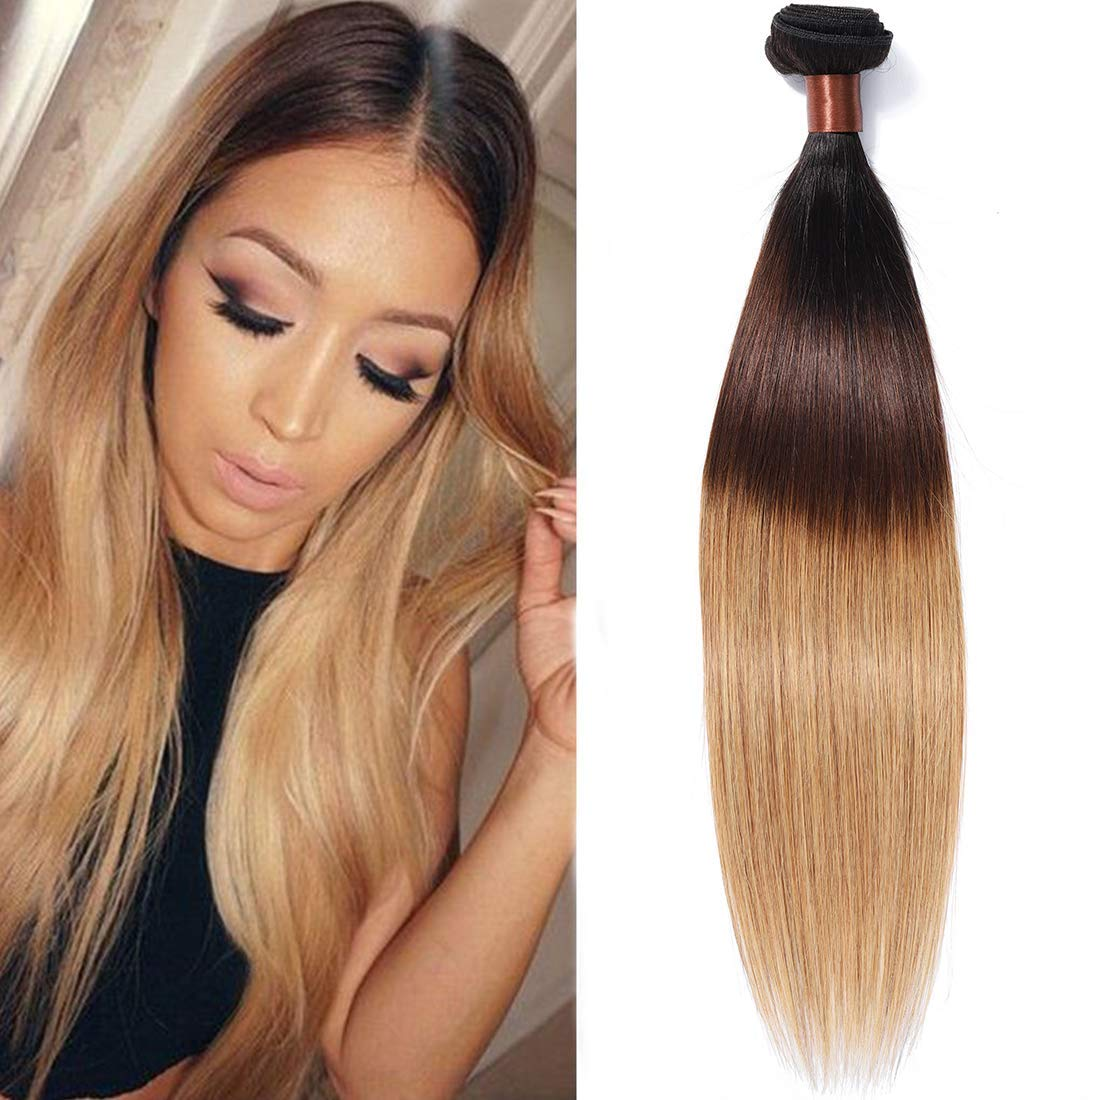 BLACKMOON HAIR Brazilian Virgin Ombre Hair Beauty products Straight Silky W All stores are sold